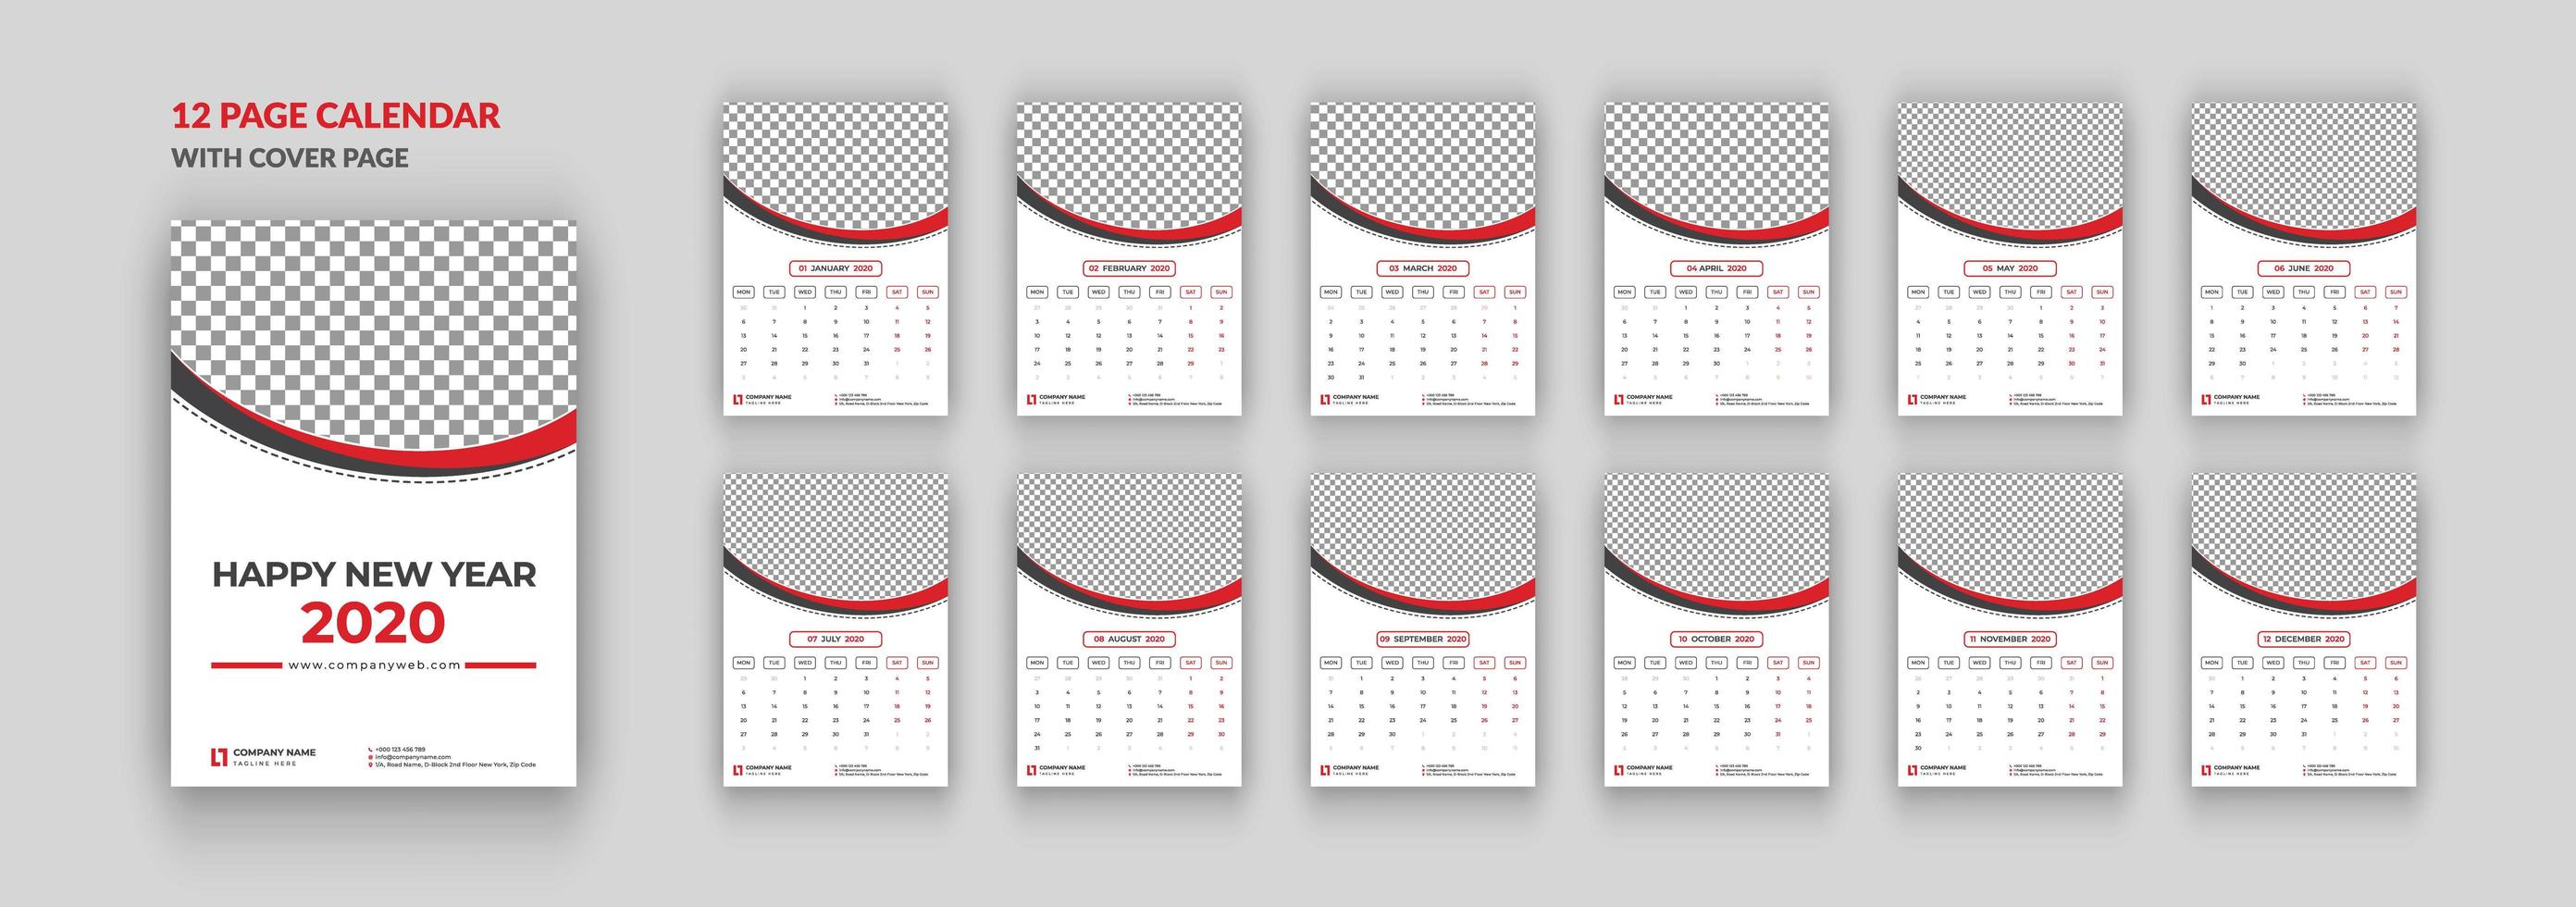 12 pages wall calendar 2020 with cover page vector